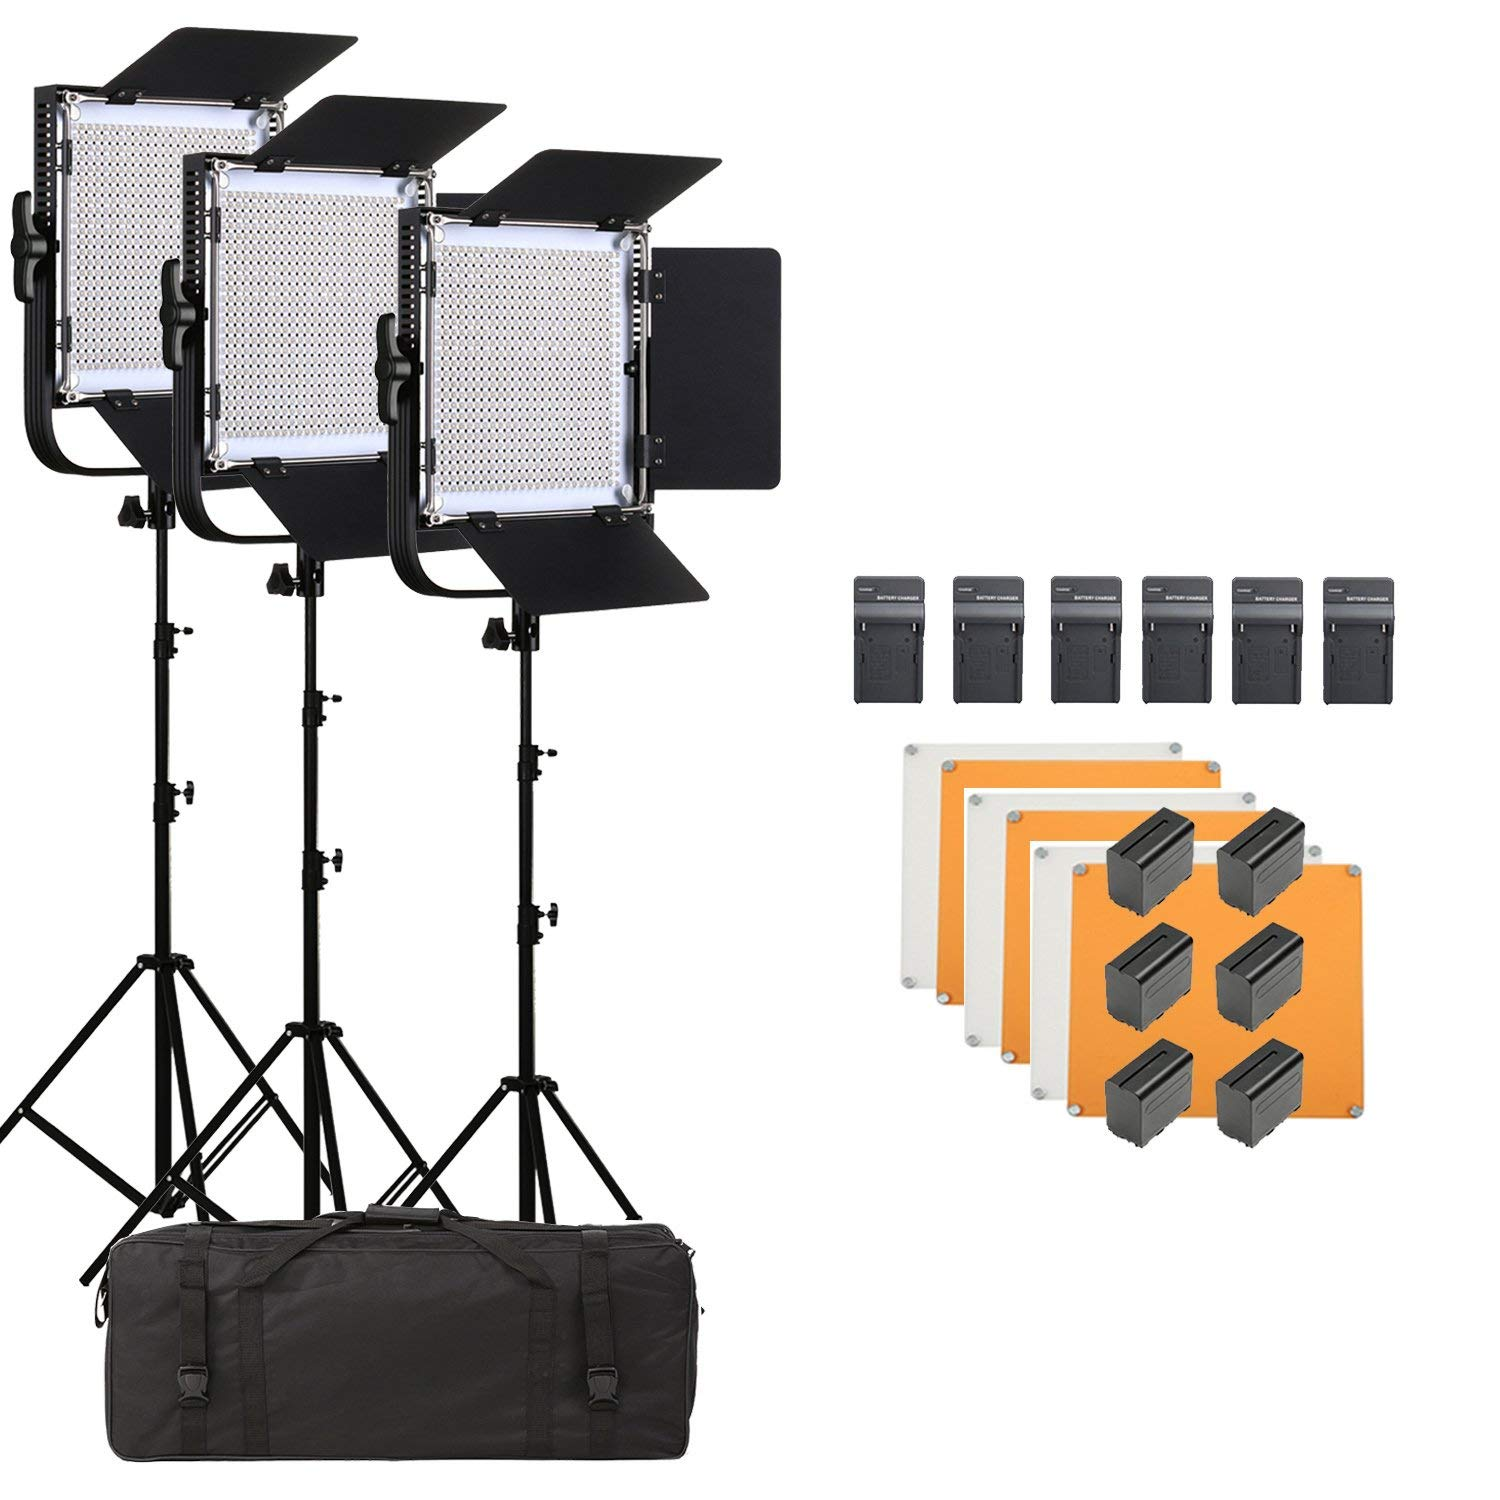 Led Video Light SUTEFOTO 660A Pro CRI95+ 4800lux 600 PCS Pro Metal Dimmable Bi-Color 3200K-5600K Light Panel for Outdoor Interview Studio Lighting Video Making Photography(3 Pack)